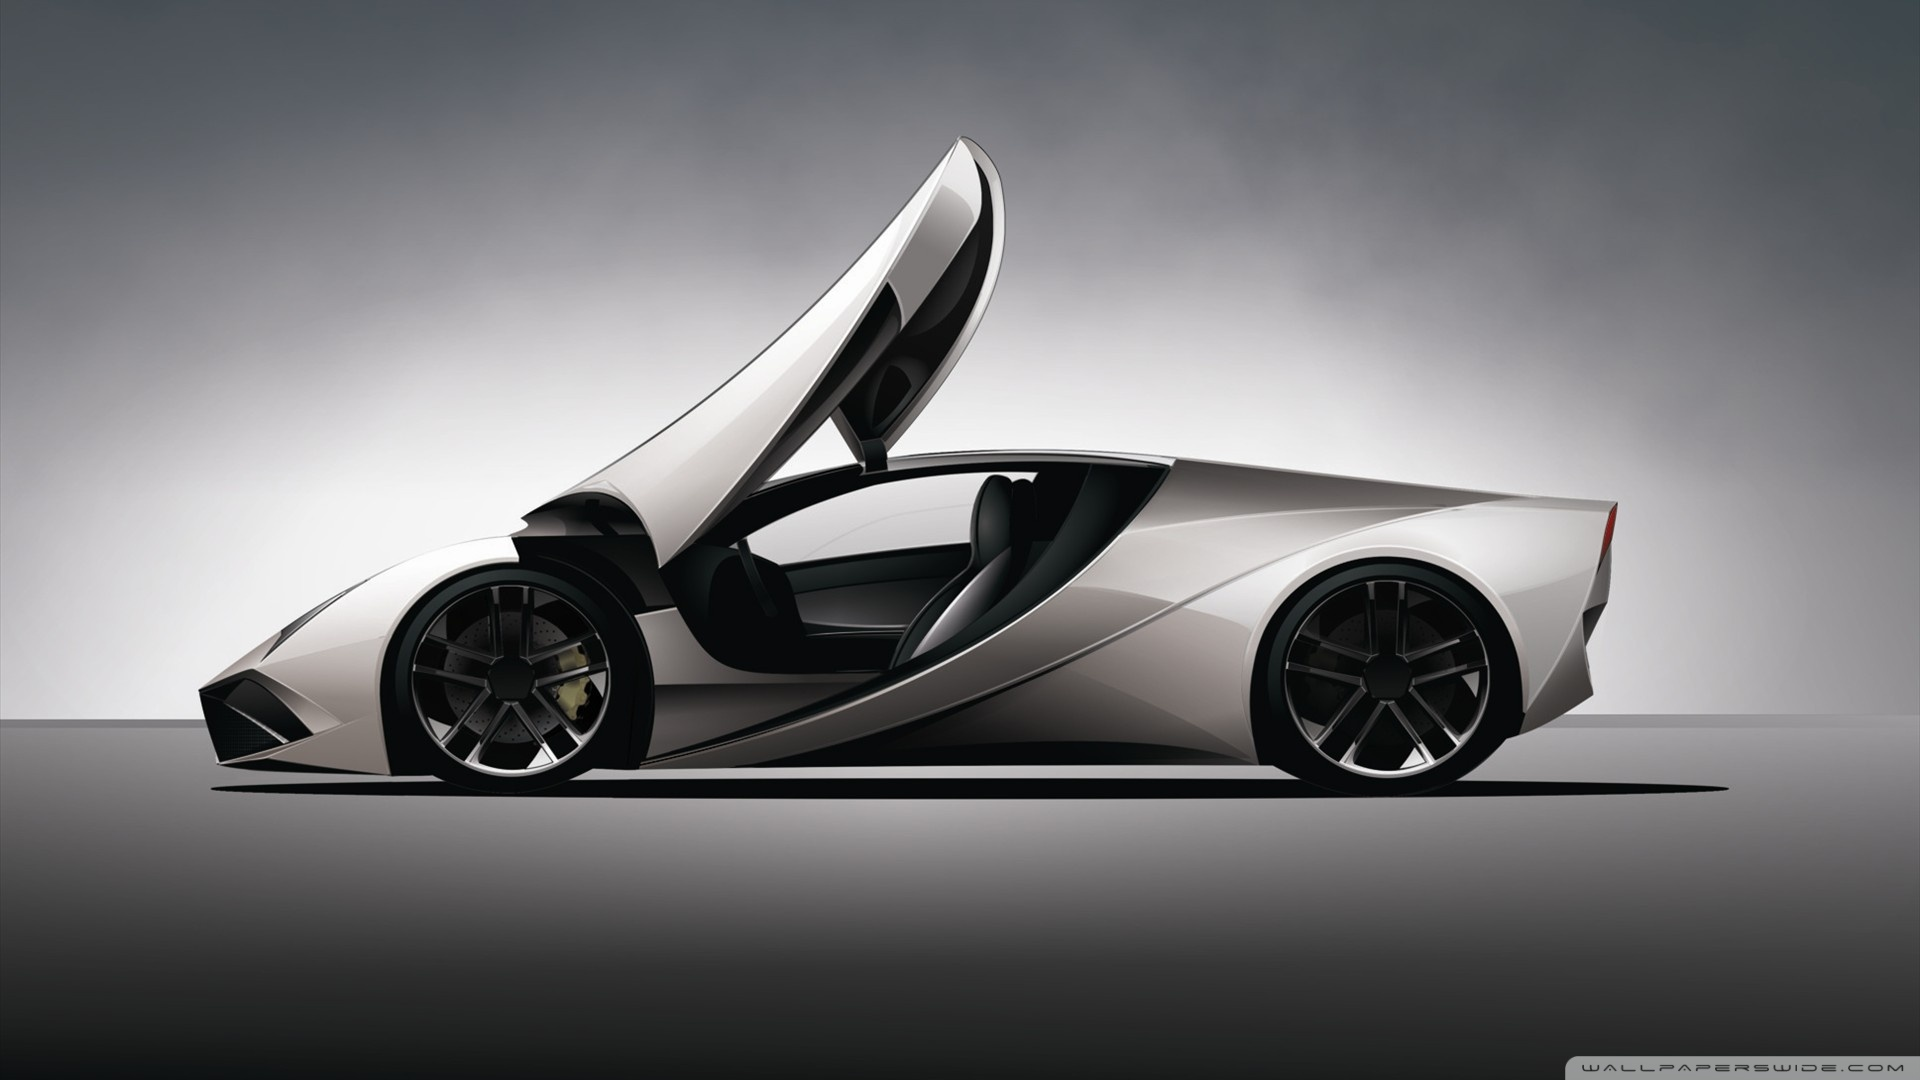 3d wallpapers cars #6